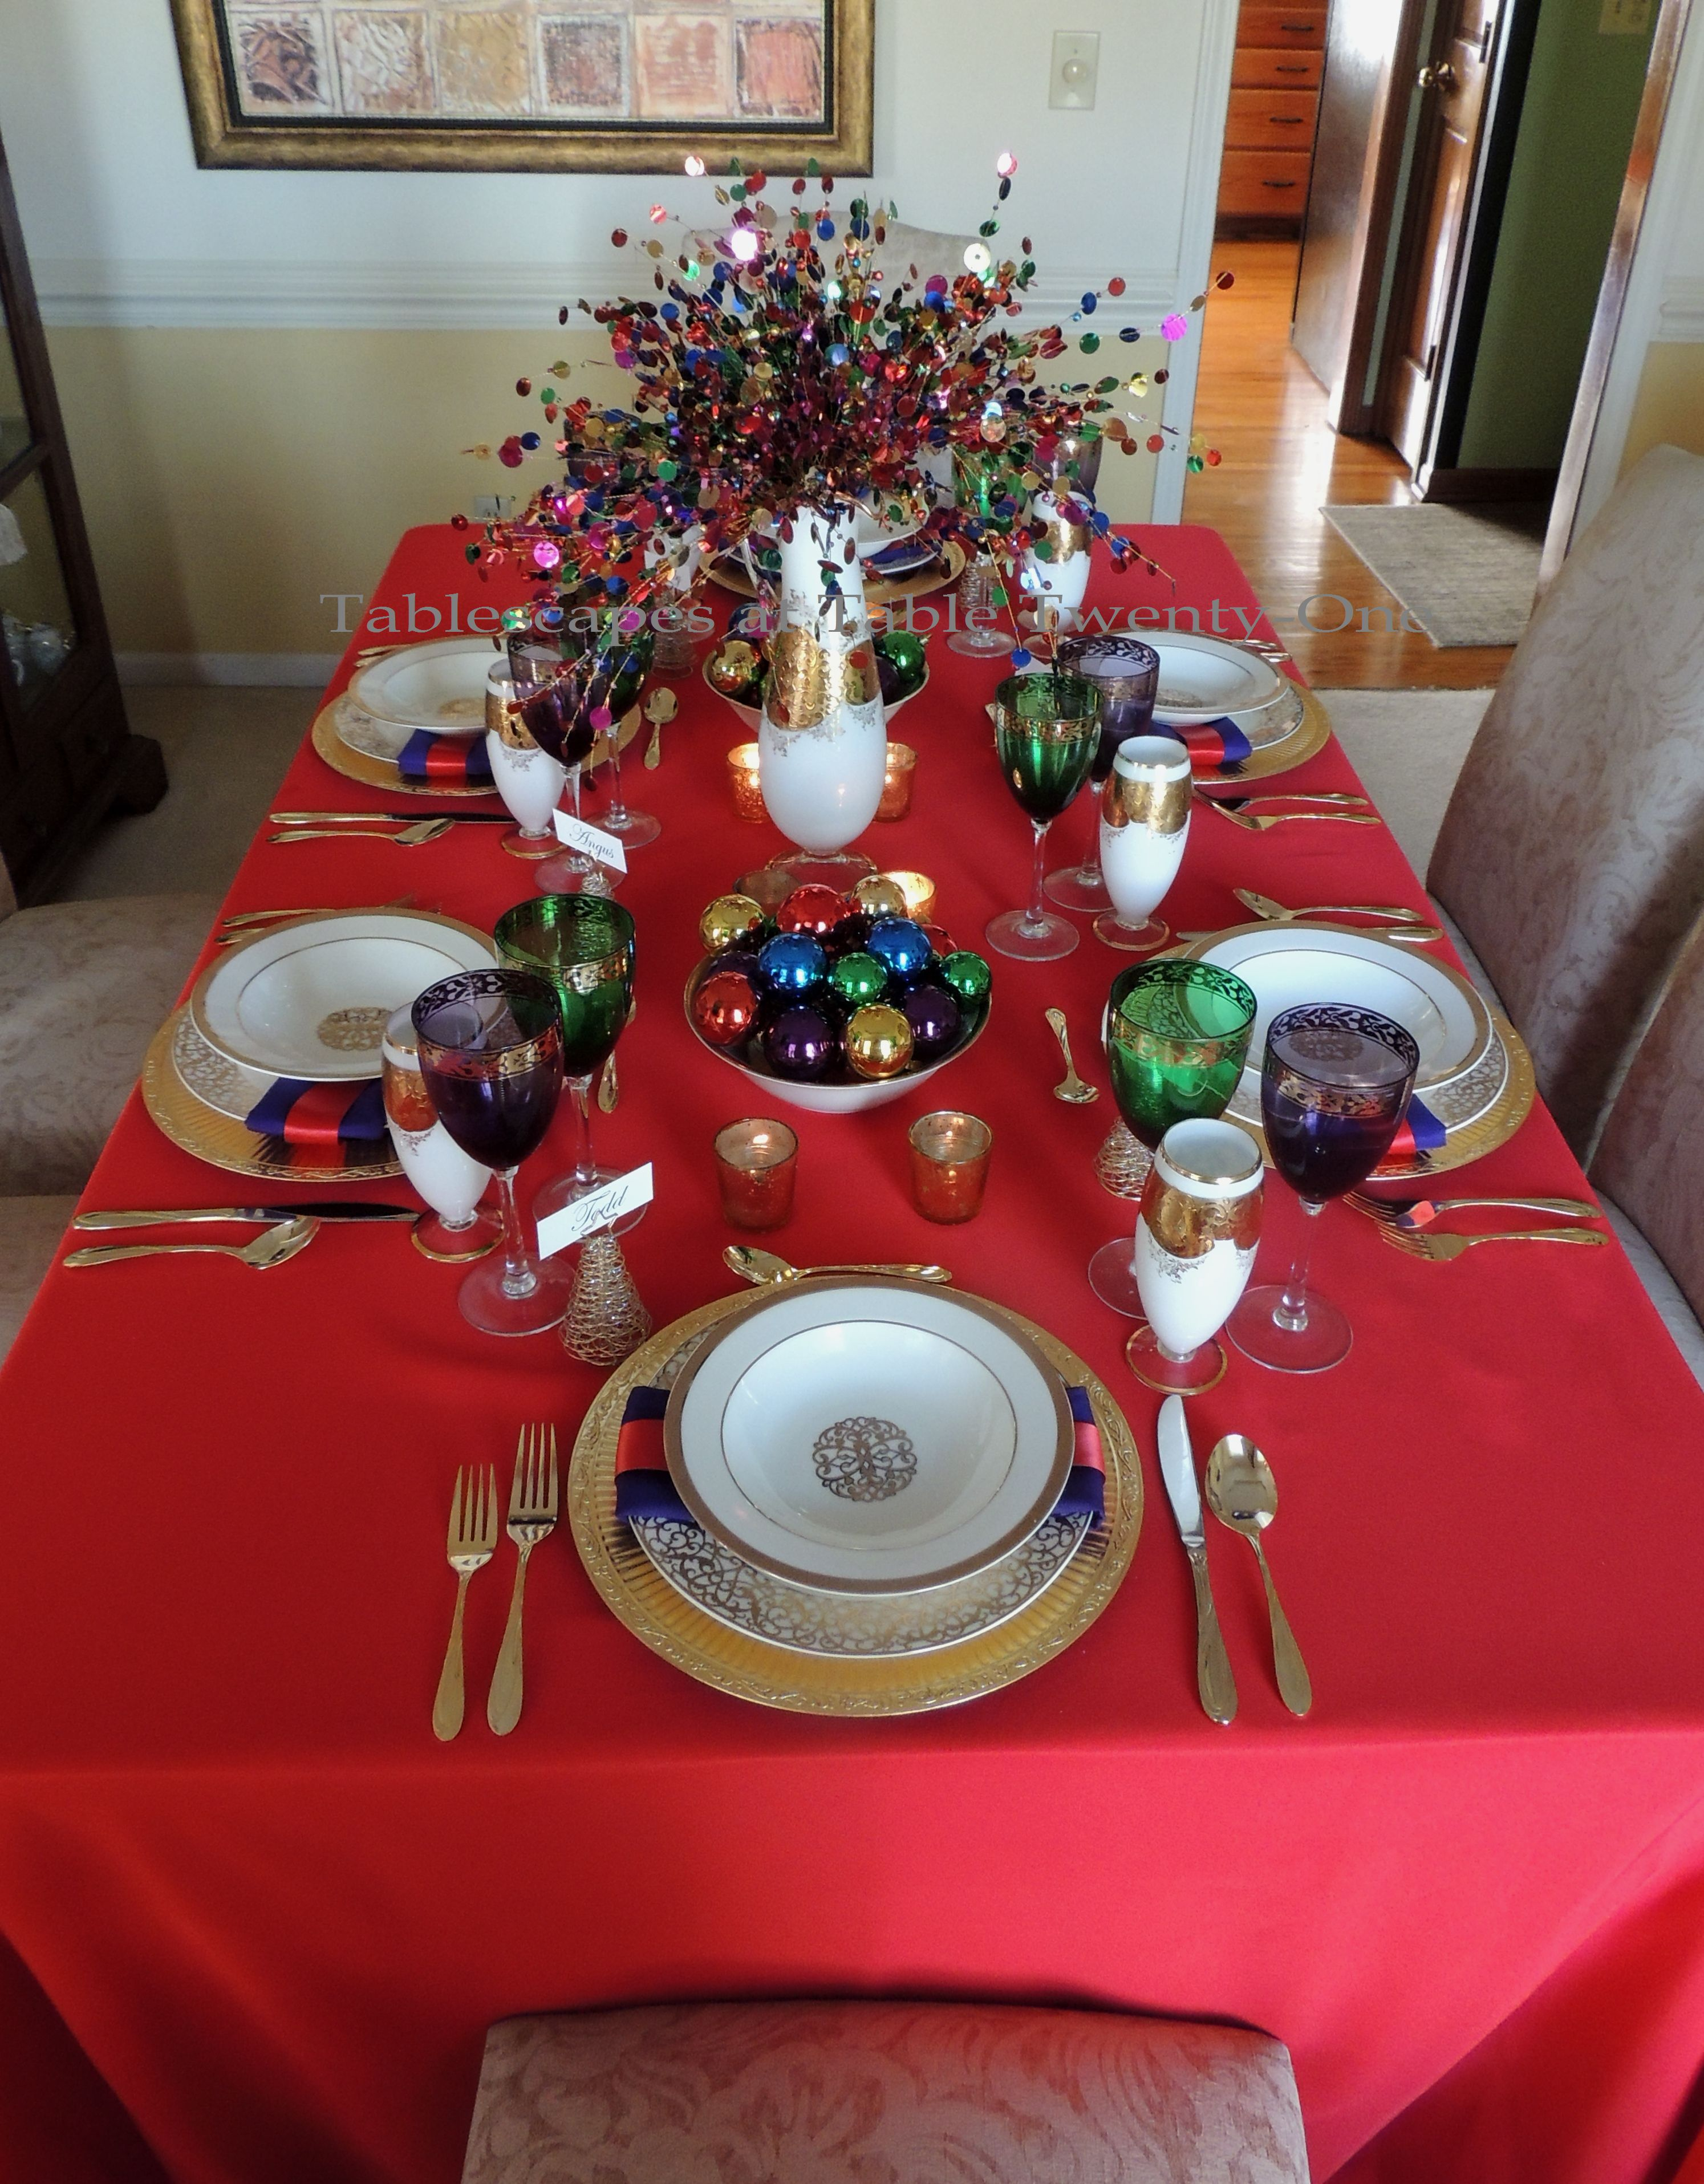 Tablescapes at Table Twenty-One, Merry & Bright Multi-Color Christmas: Full table lengthwise